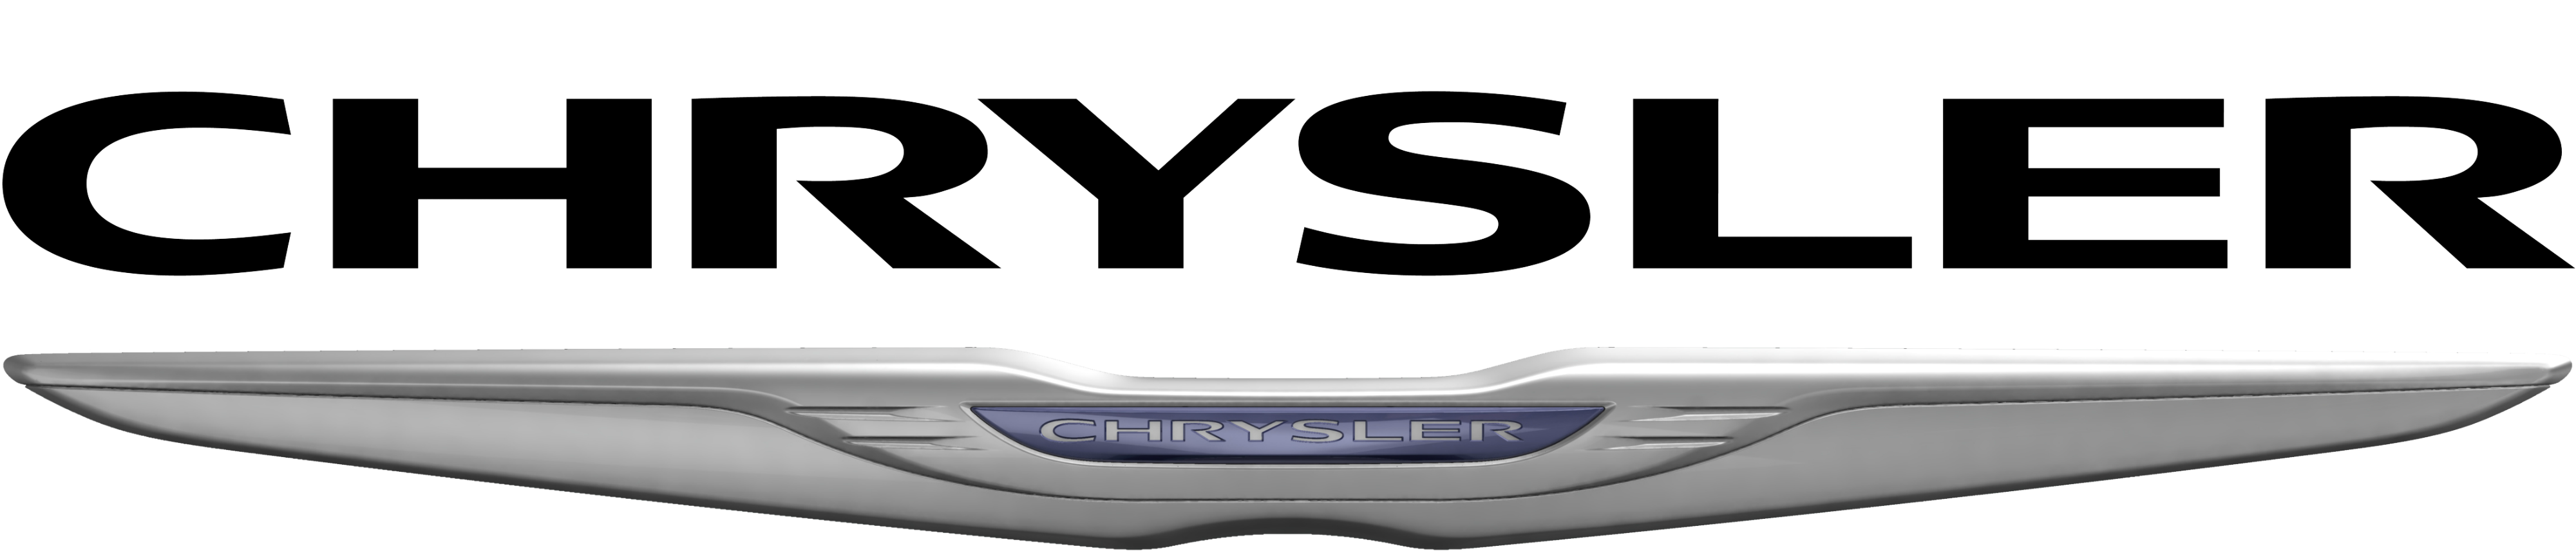 Chrysler Logo Chrysler Car Symbol Meaning And History Car Brand